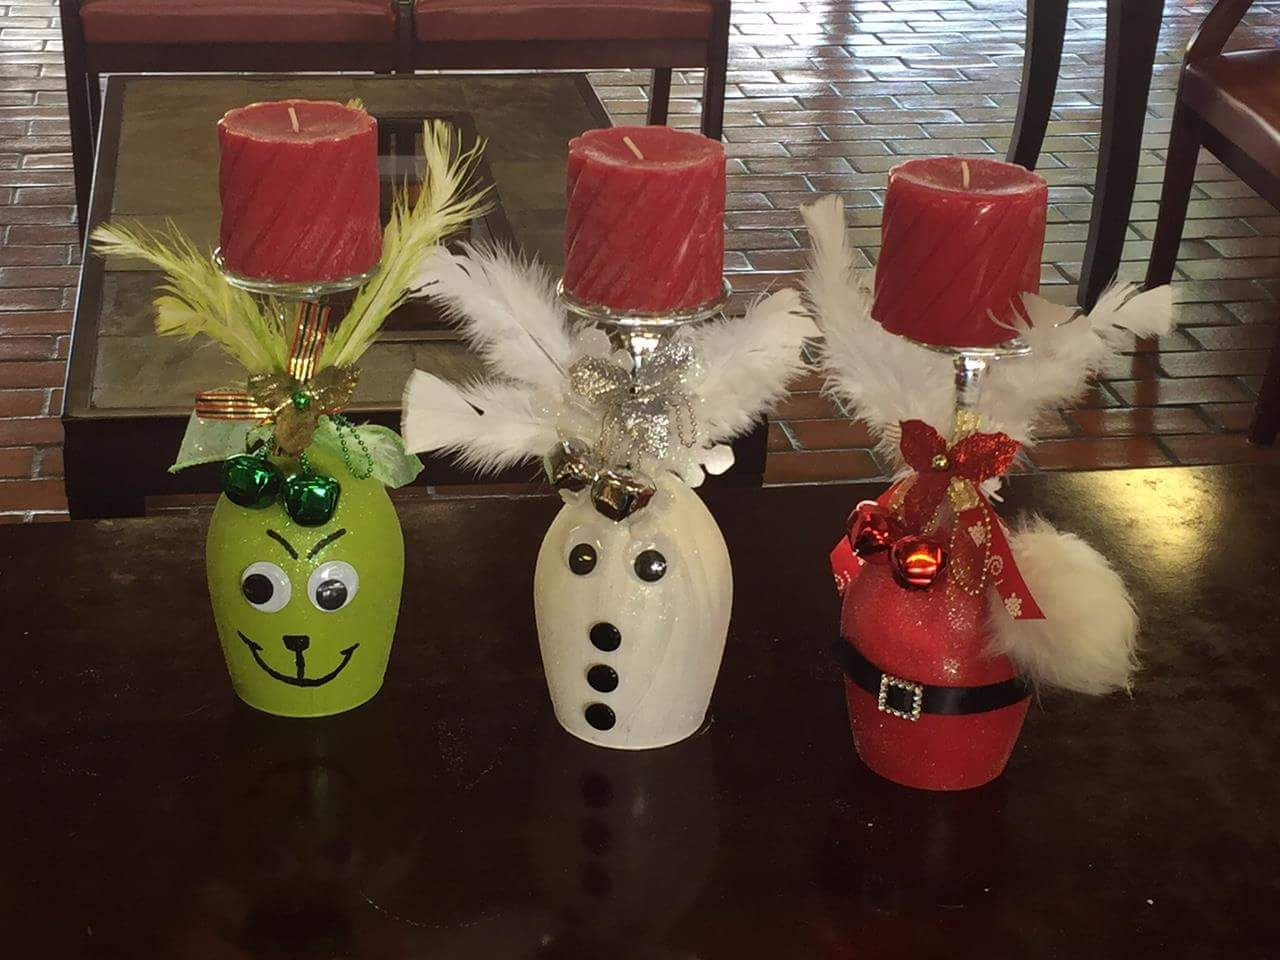 50 Amazing Diy Christmas Wine Glasses Candle Holders For Your Favorite Christmas Party Christmas Wine Glasses Diy Christmas Wine Glasses Wine Glass Candle Holder